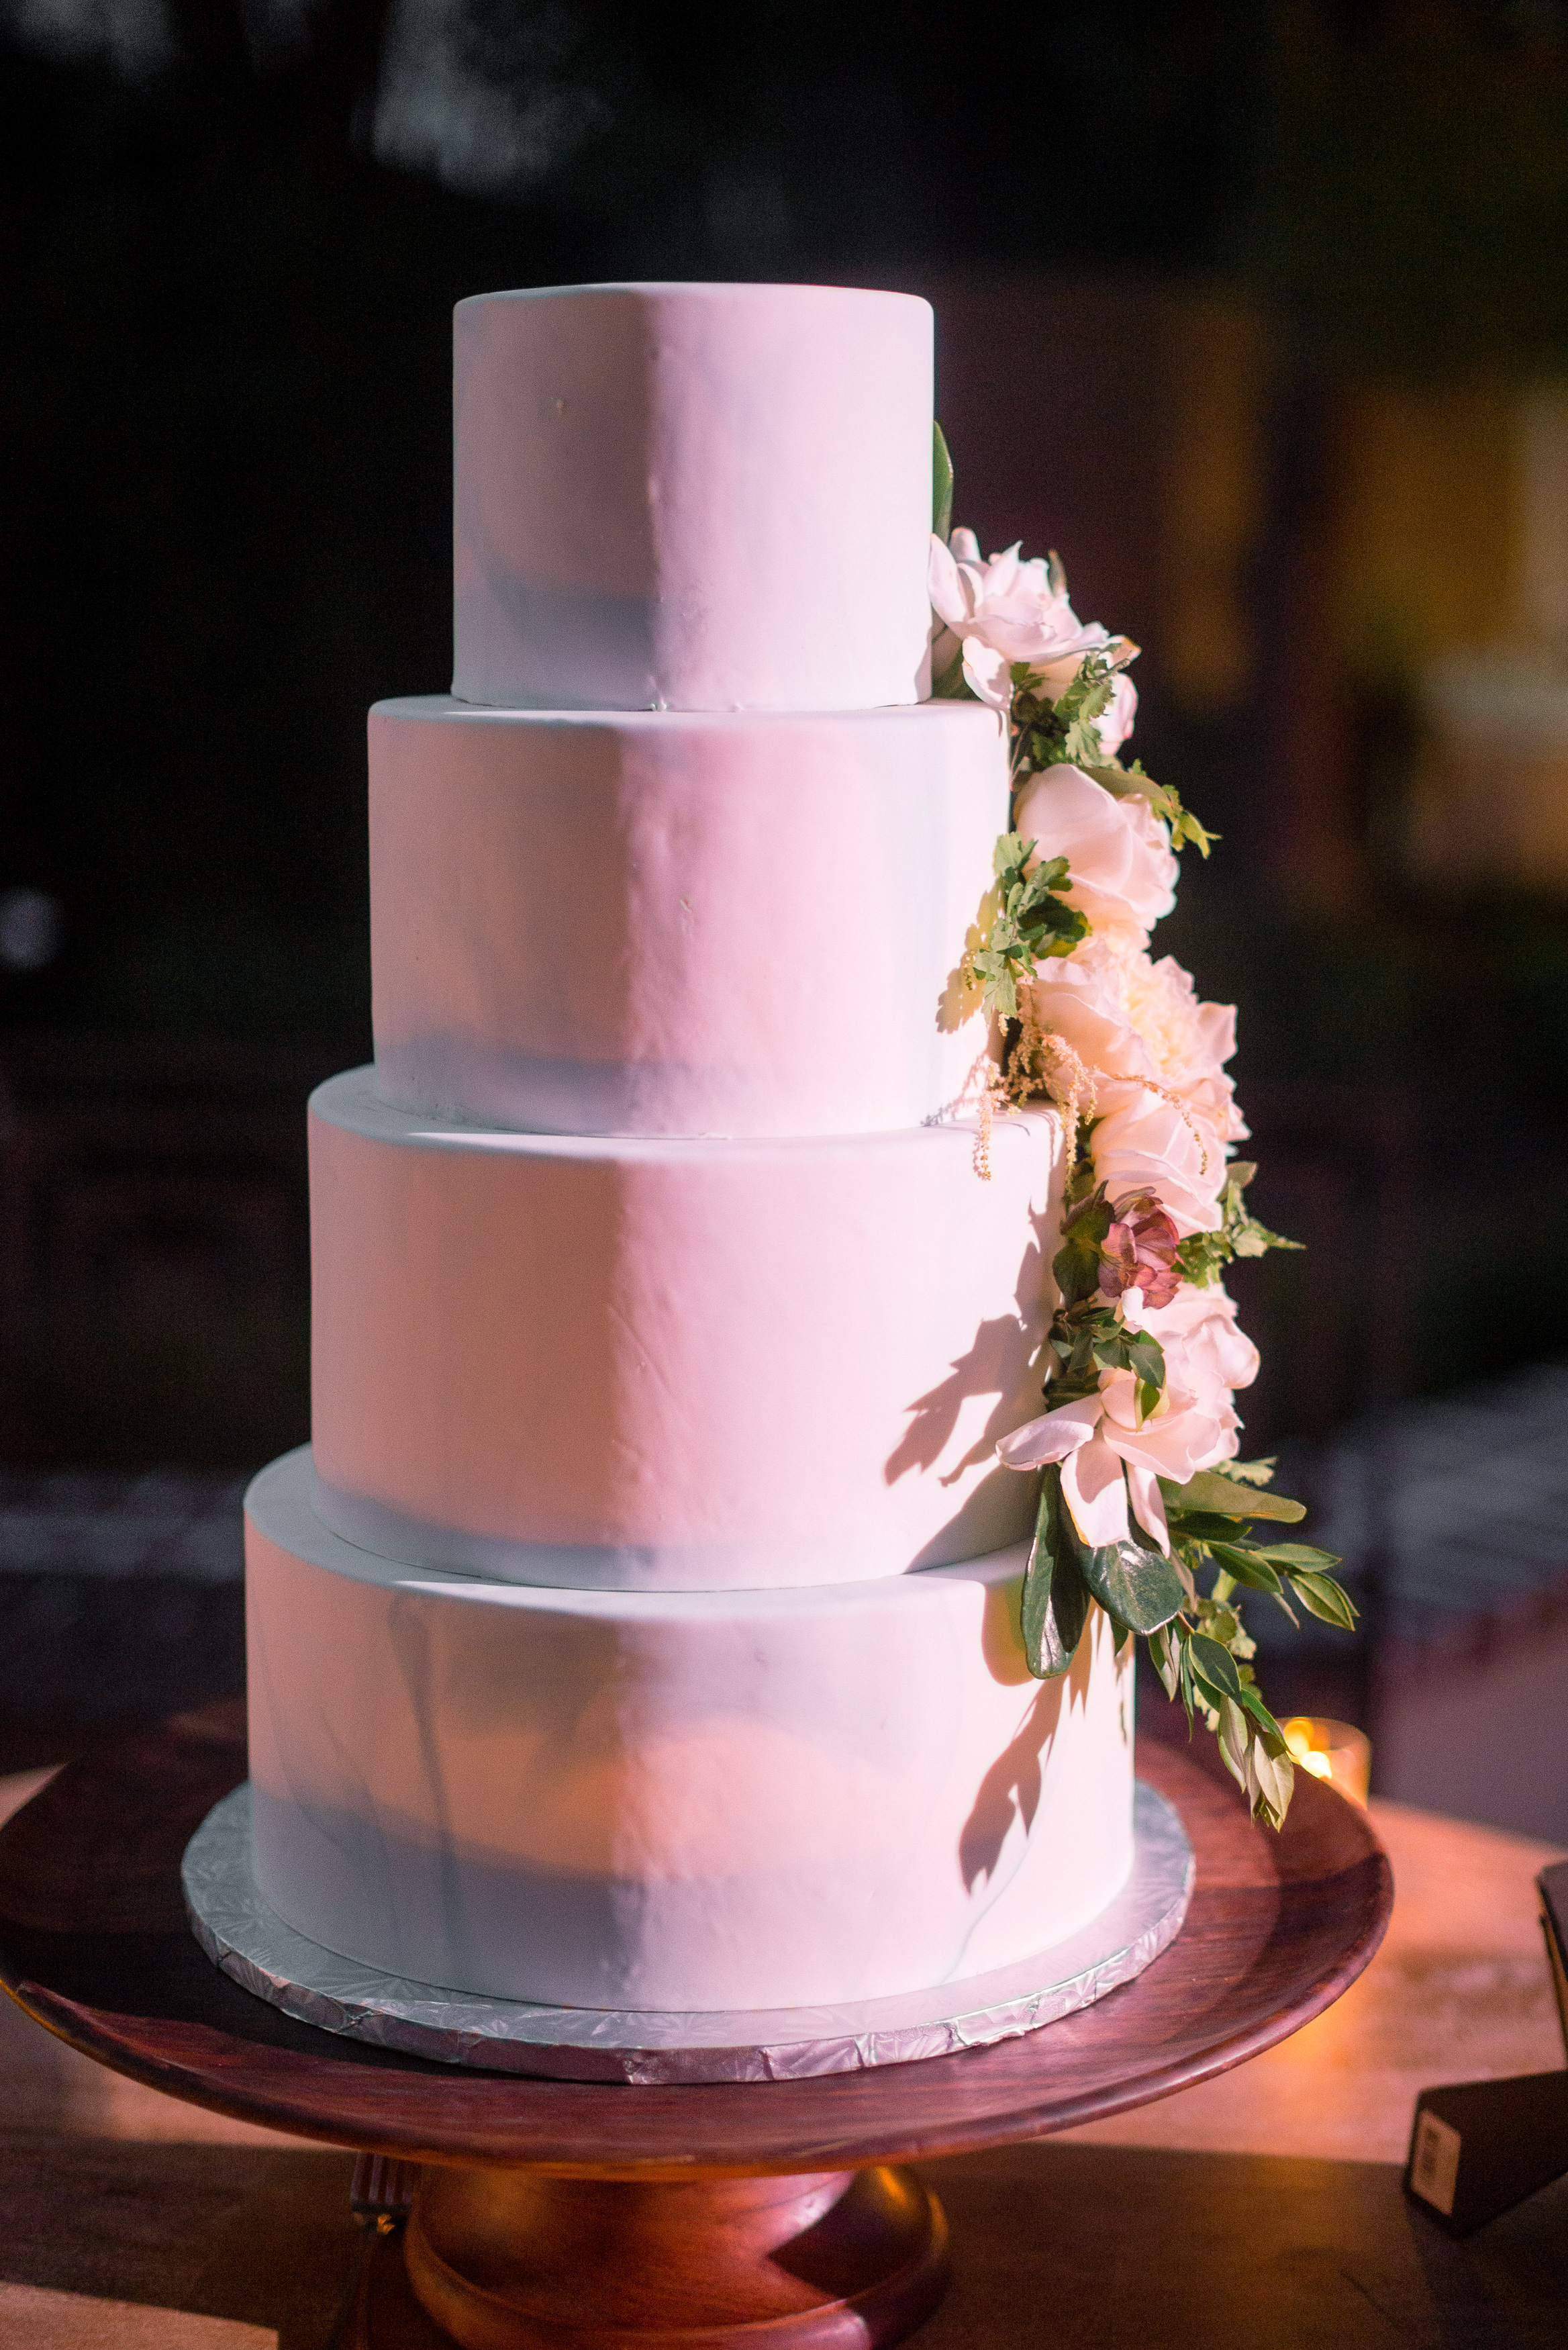 Four tiered cake by Cakes by Kasarda at The Thomas Bennett House //  A Lowcountry Wedding Magazine & Blog